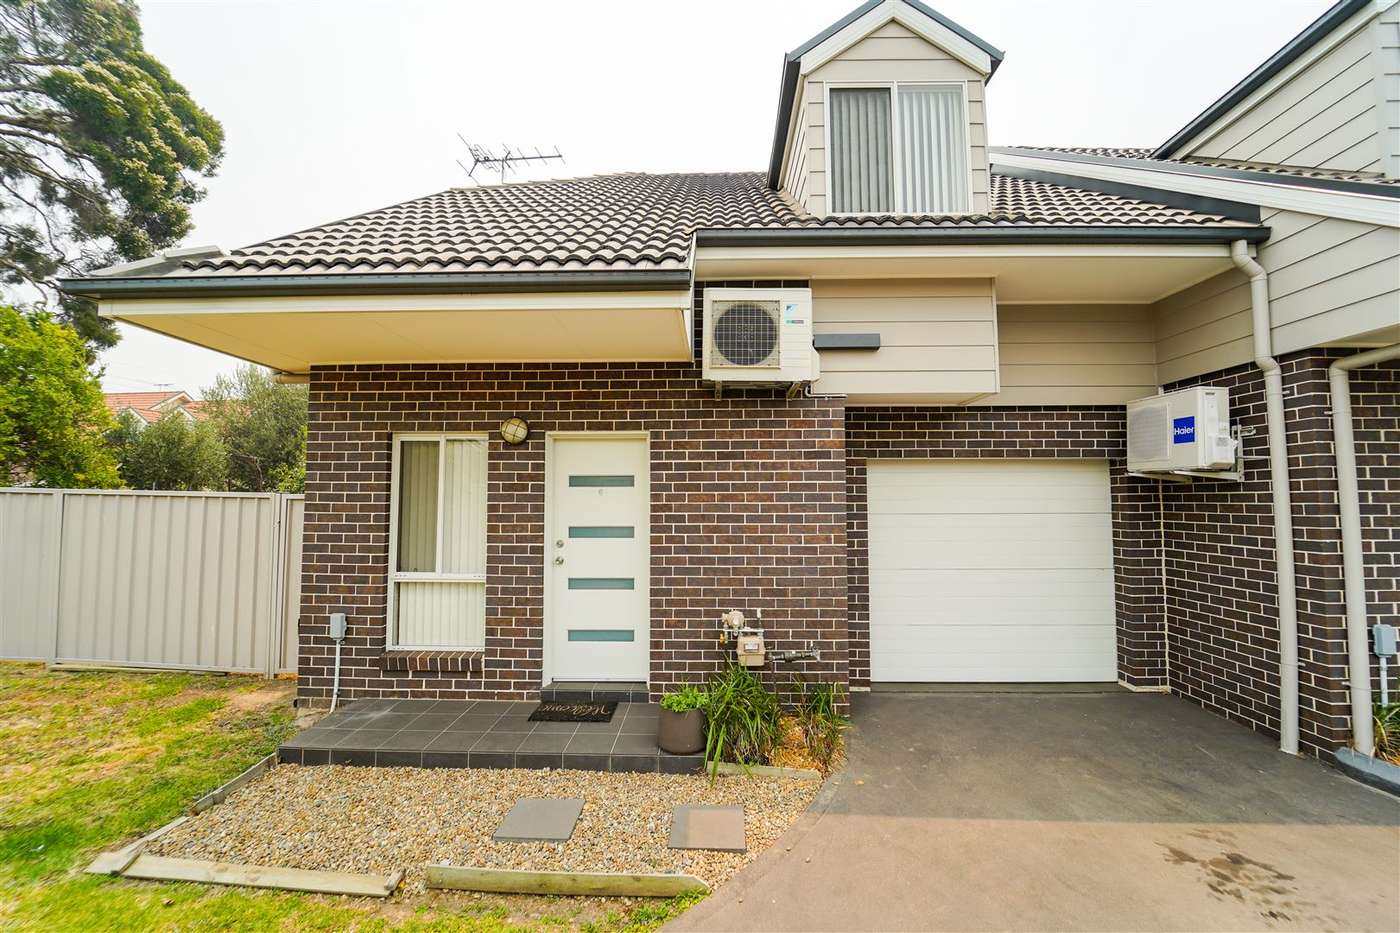 Main view of Homely townhouse listing, 6/43 Australia Street, St Marys, NSW 2760